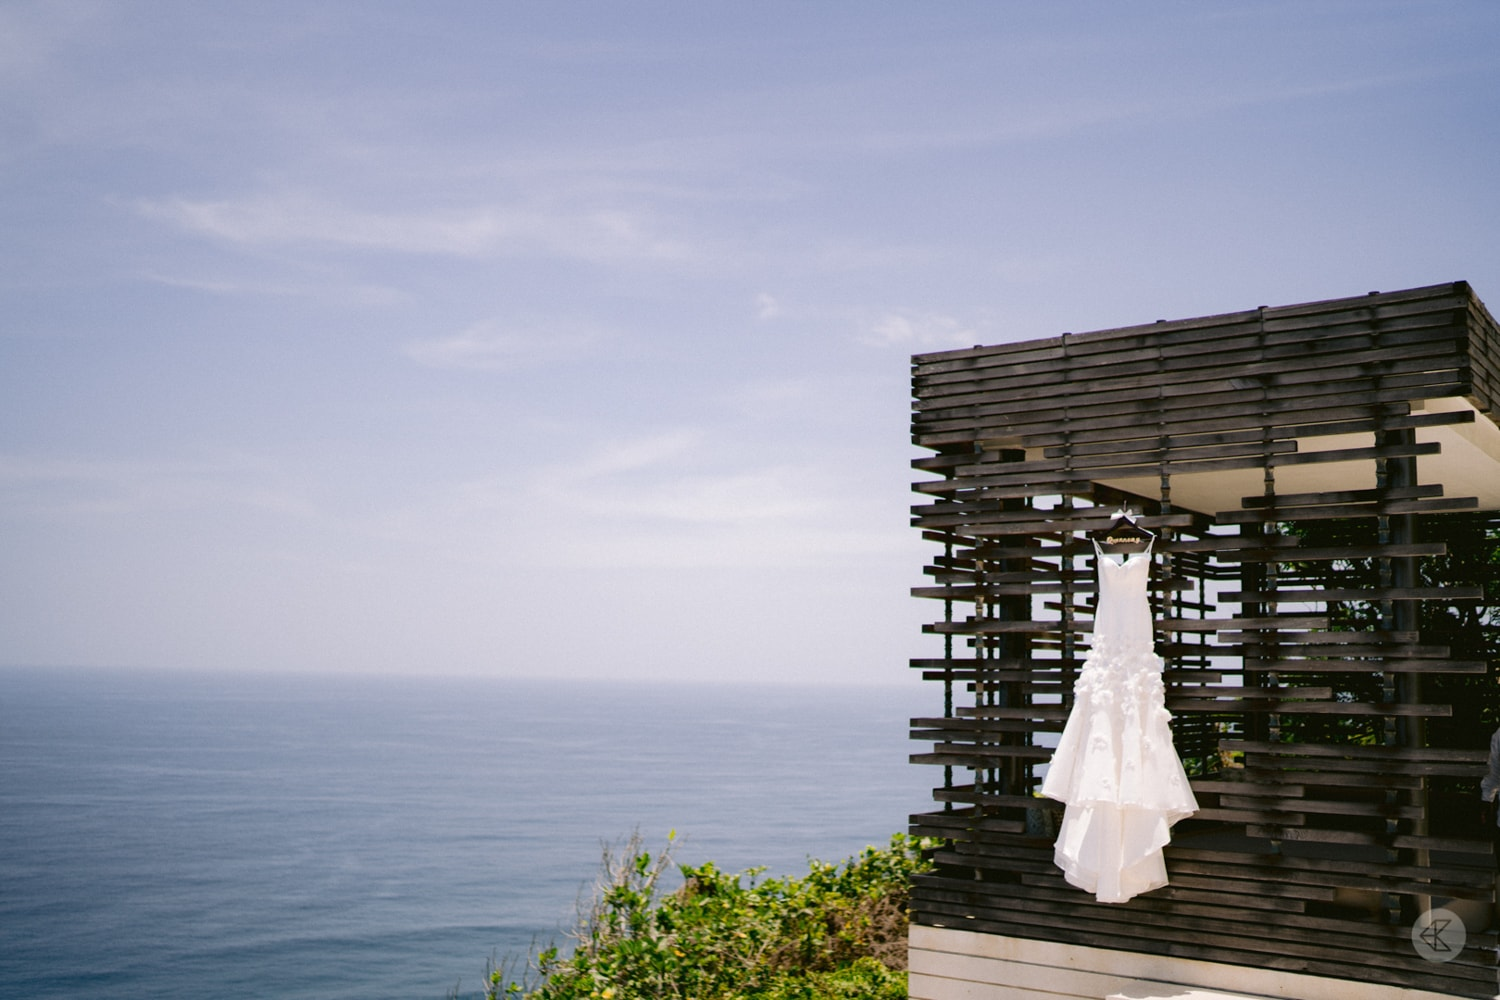 Gown with beautiful Bali scenery